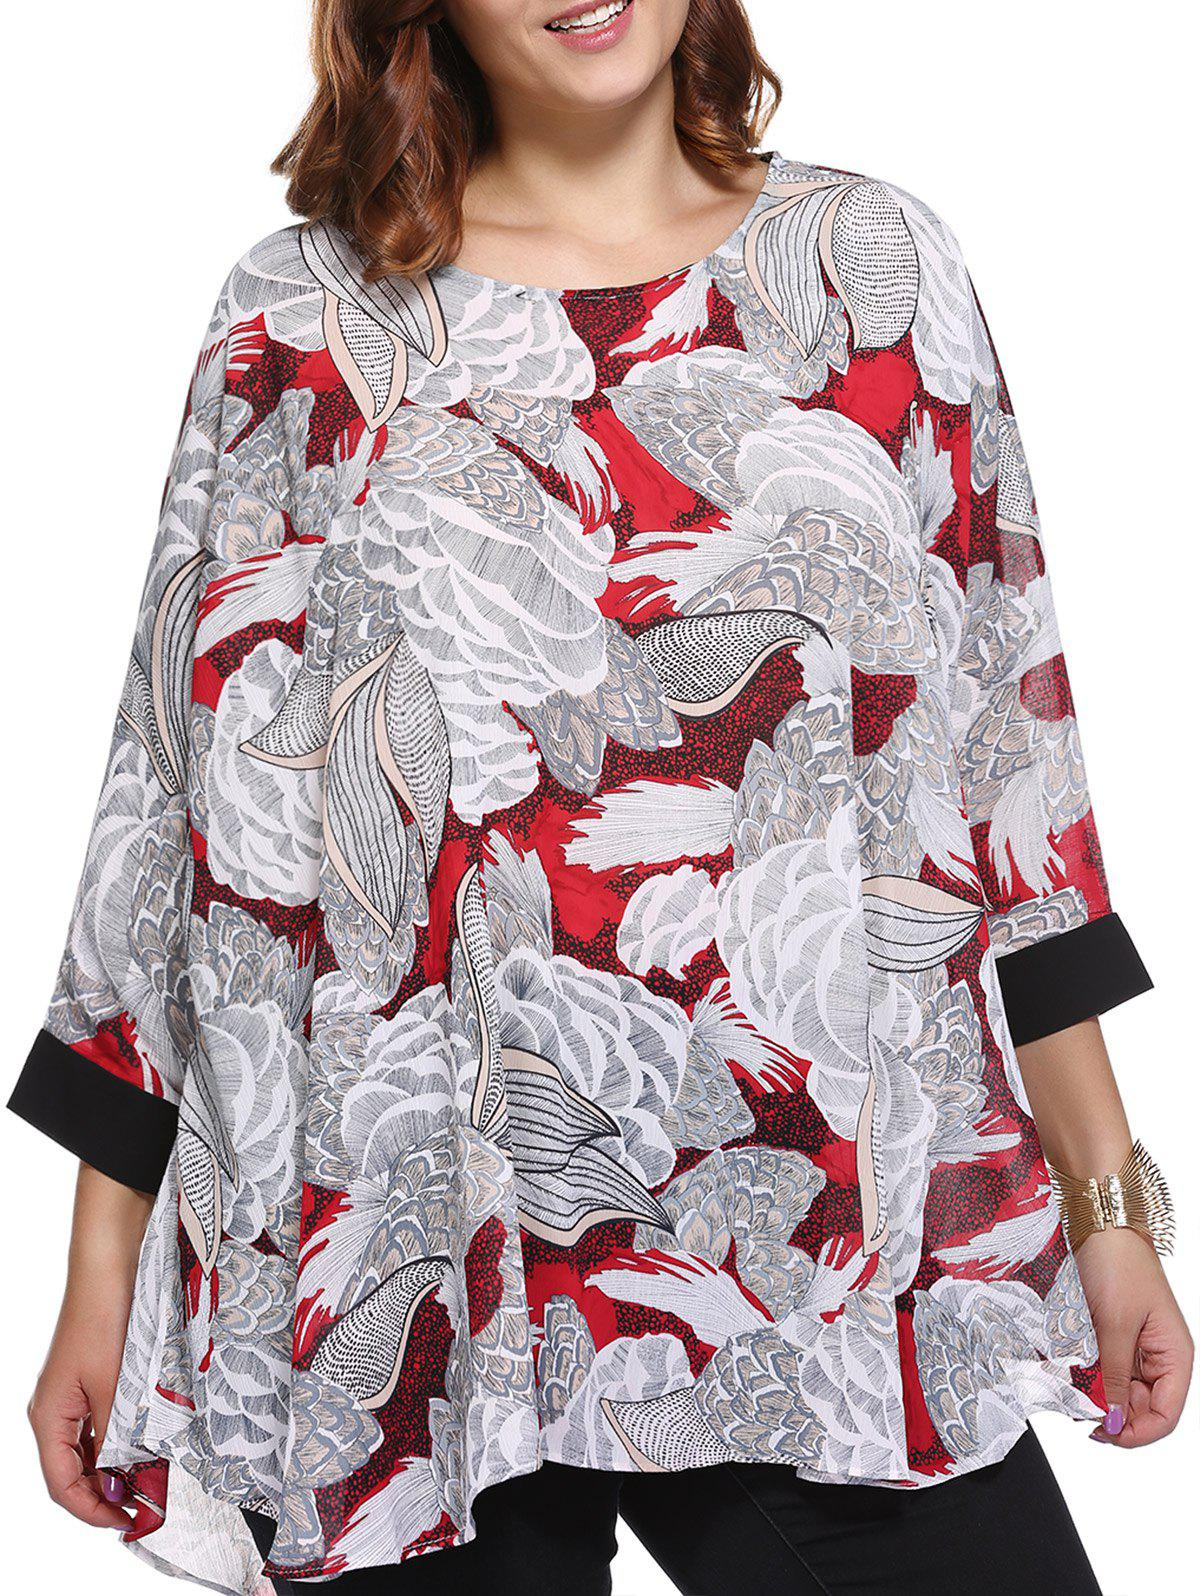 Femmes Élégant  's Plus Size Scoop Neck Blouse à imprimé floral - Rouge ONE SIZE(FIT SIZE L TO 3XL)